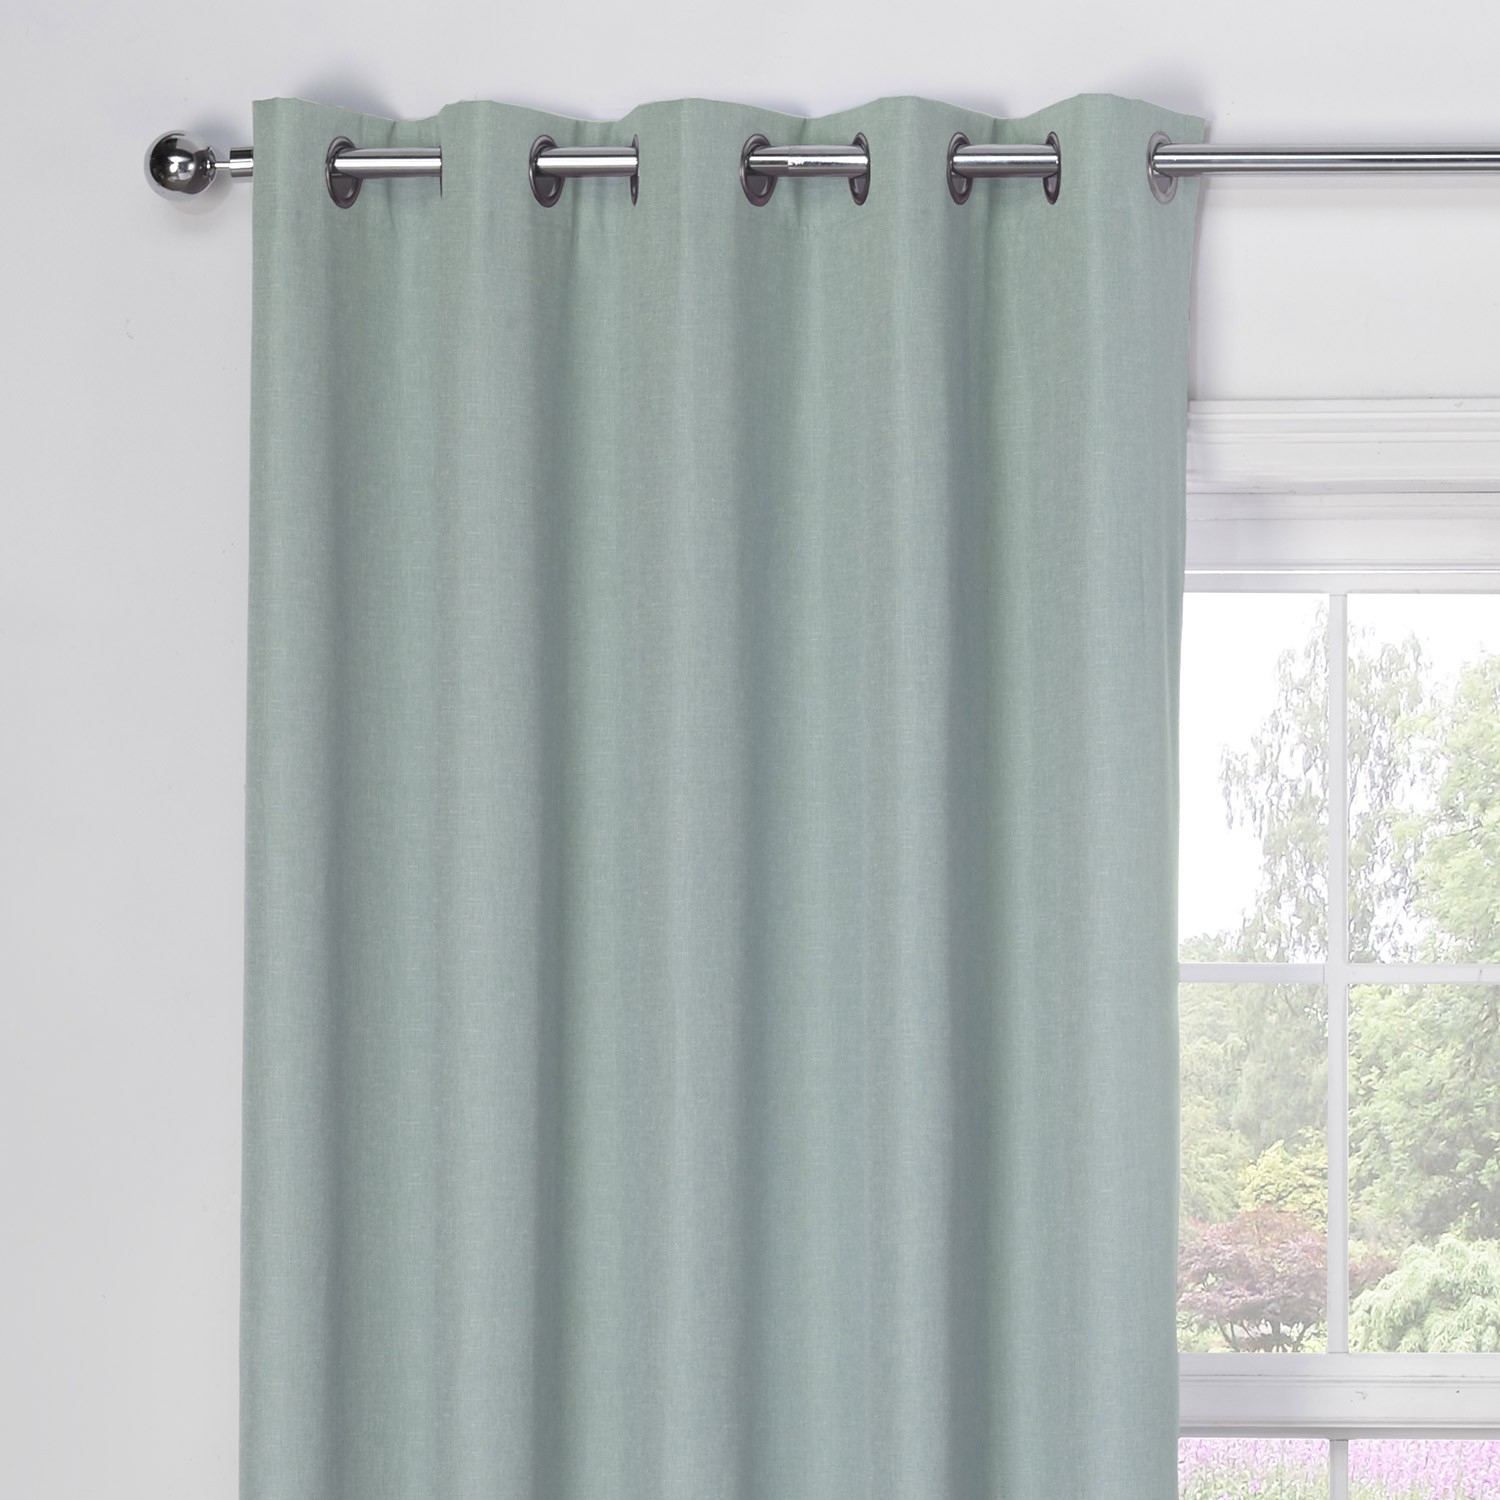 Luna Duck Egg Luxury Blackout Eyelet Curtains Pair Julian Charles Within Duck Egg Blue Blackout Curtains (View 8 of 15)